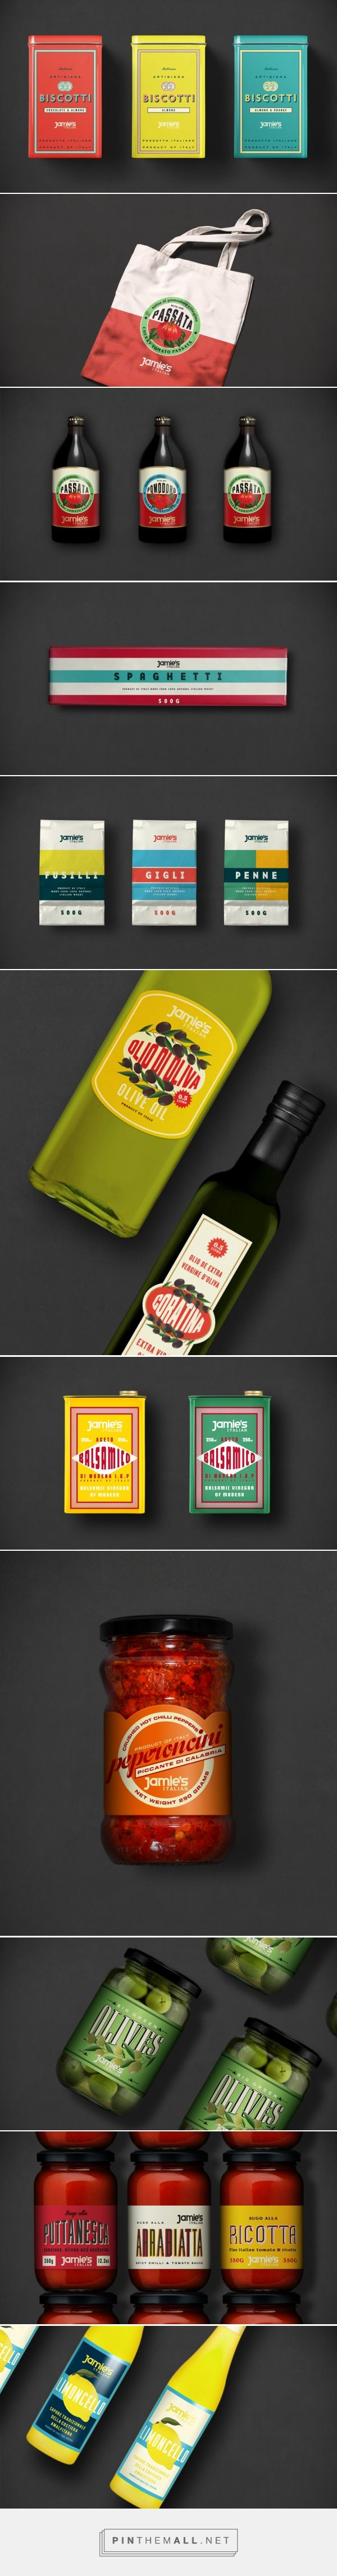 The Plant creates Jamie's Italian Deli Range packaging branding curated by Packaging Diva PD. Jamie's Italian uses authentic Italian ingredients sourced from small producers all around Italy.